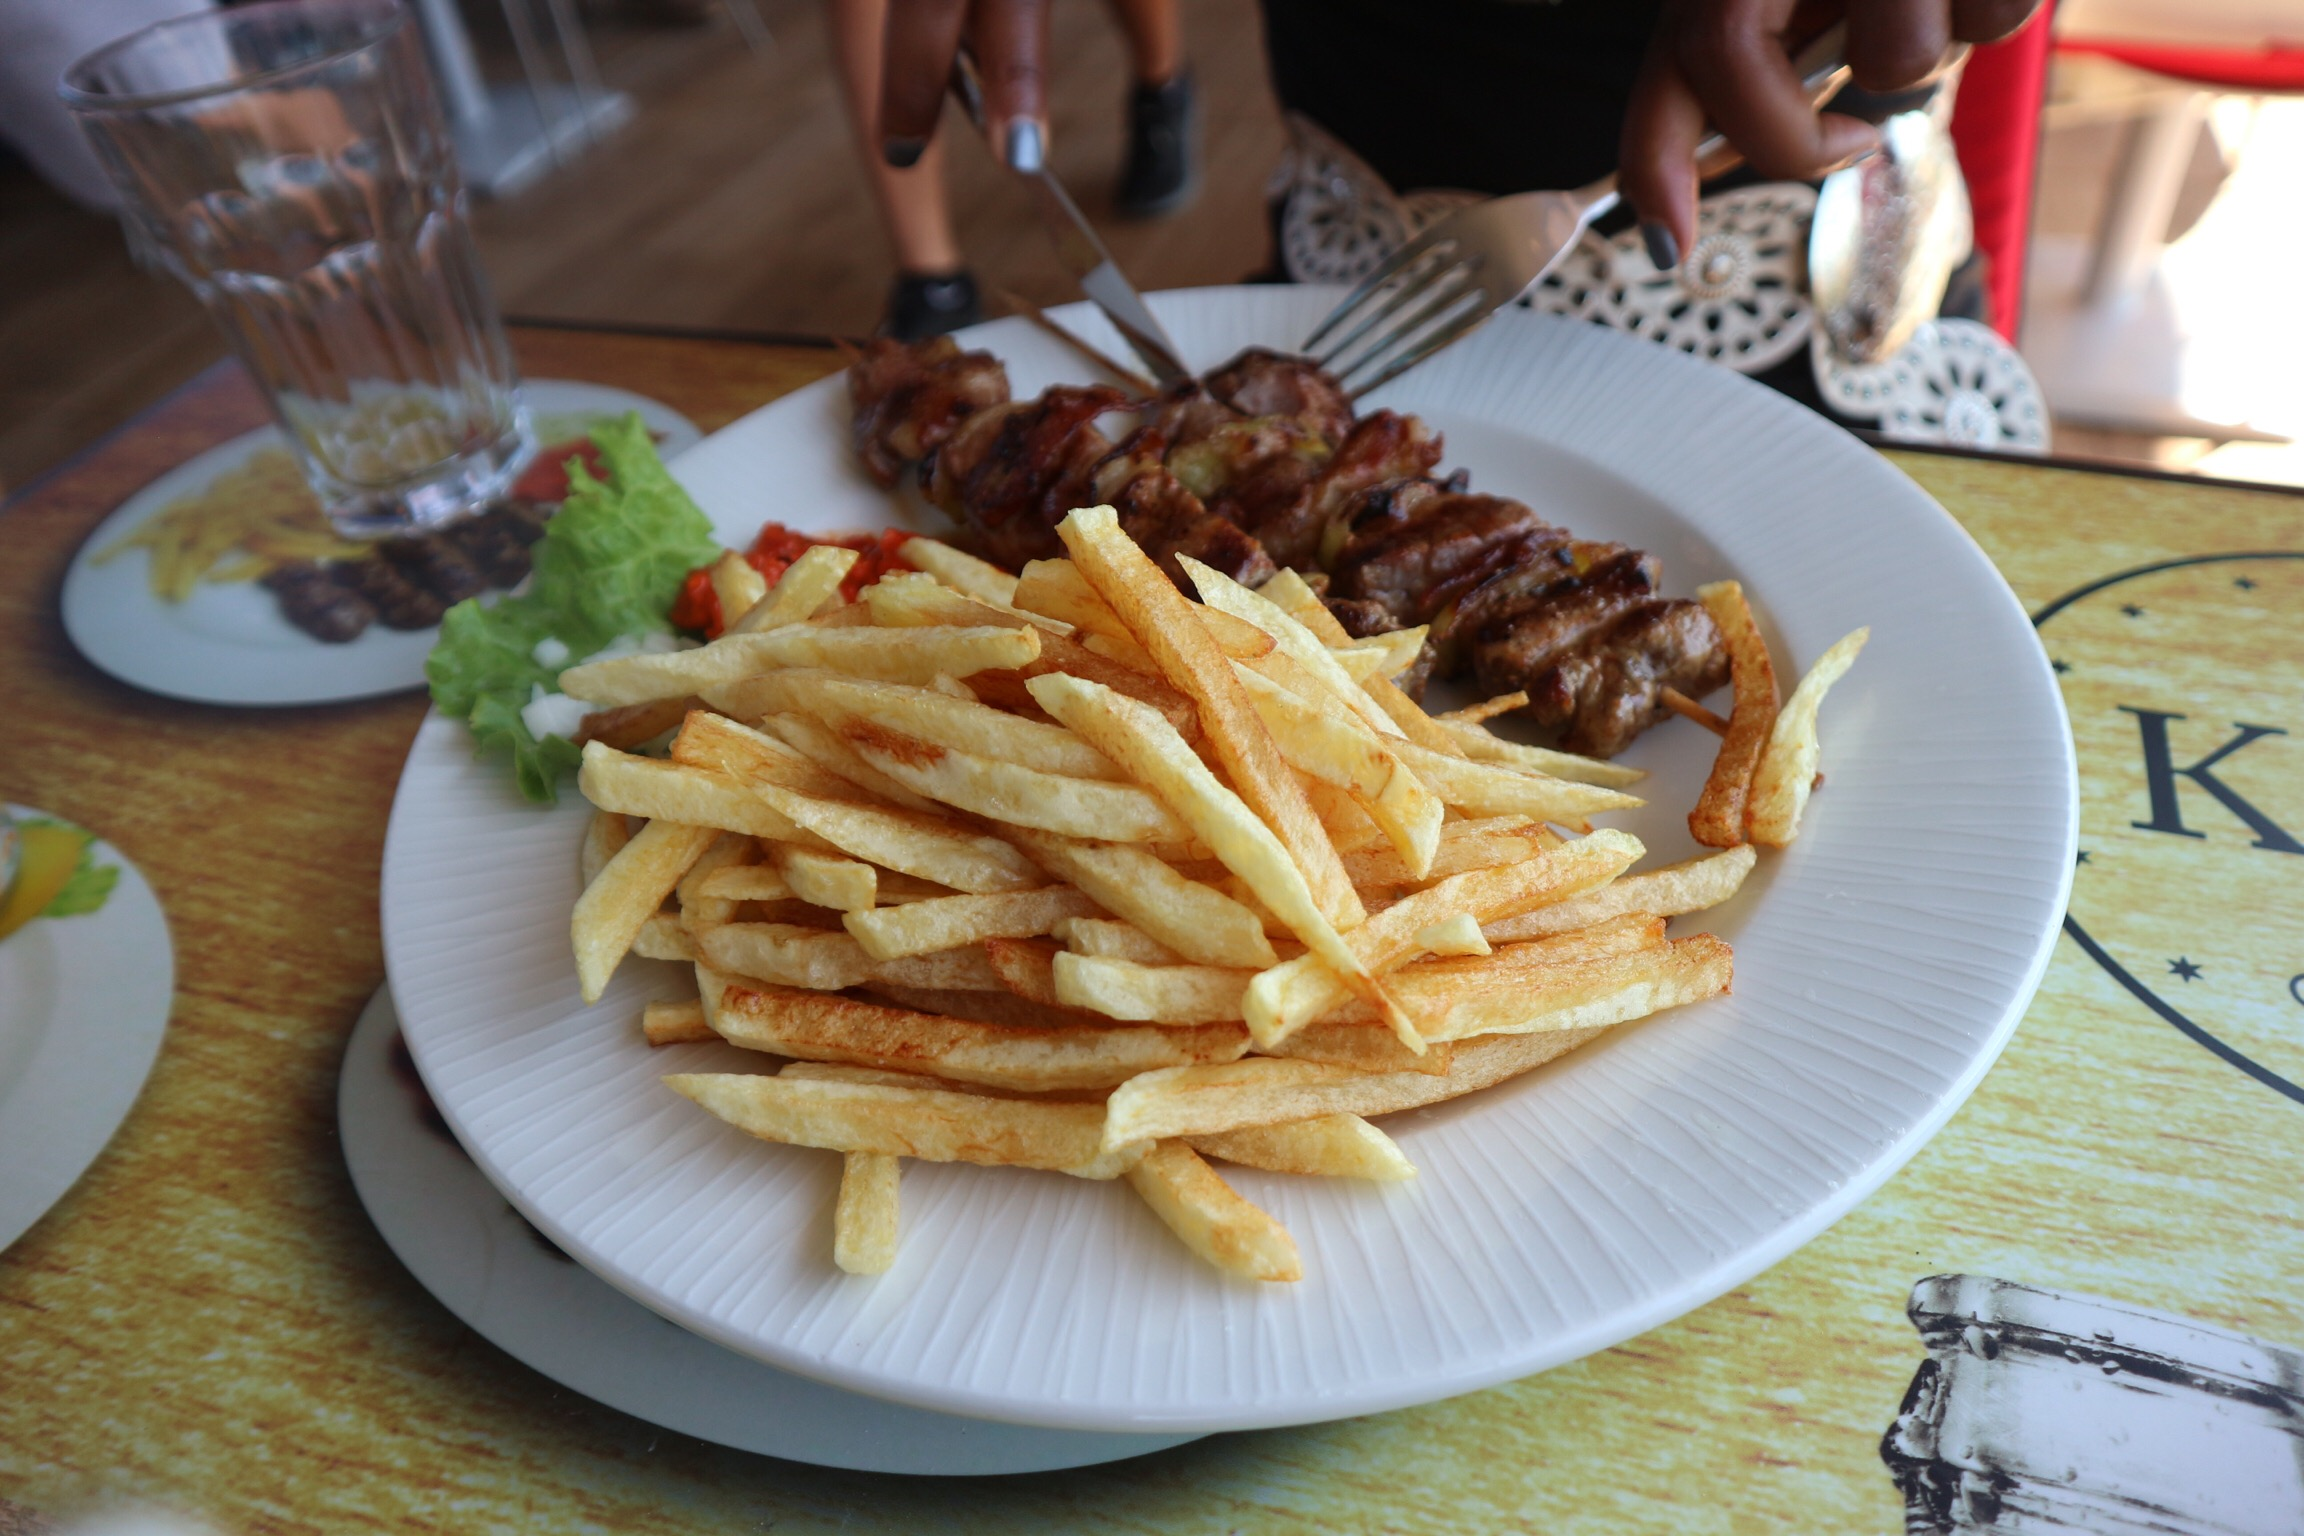 Kiks-Grill & More: Sausage and Chips